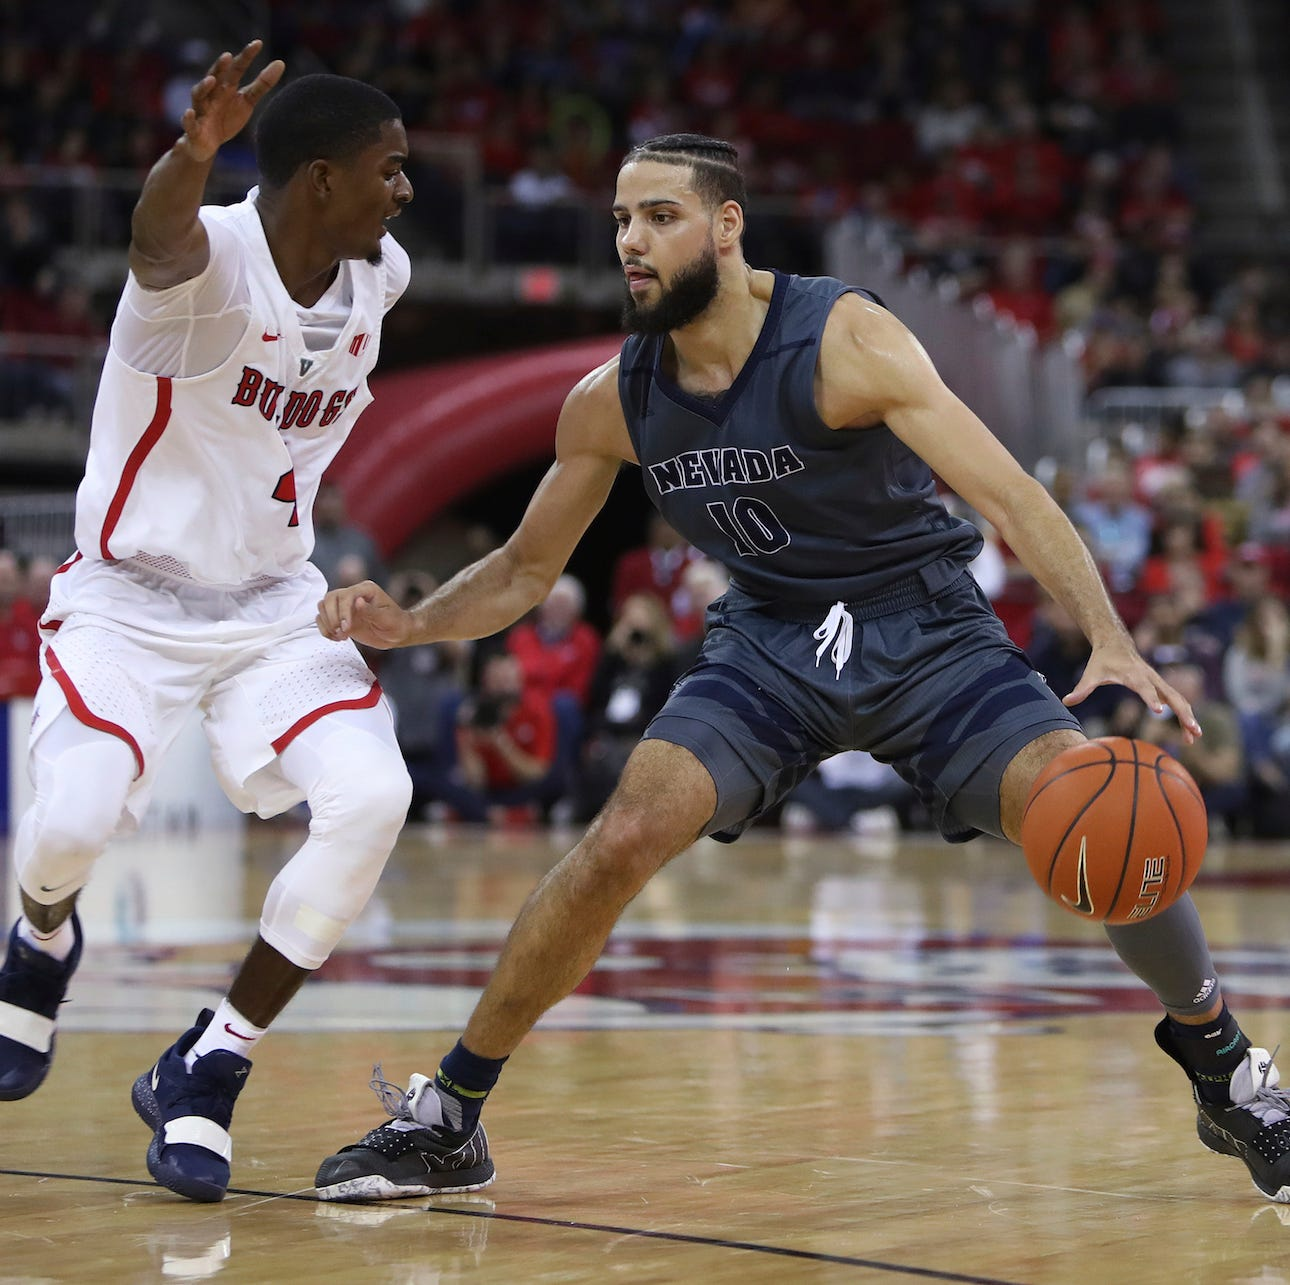 Coming off second loss, Wolf Pack faces Fresno State's long-range attack